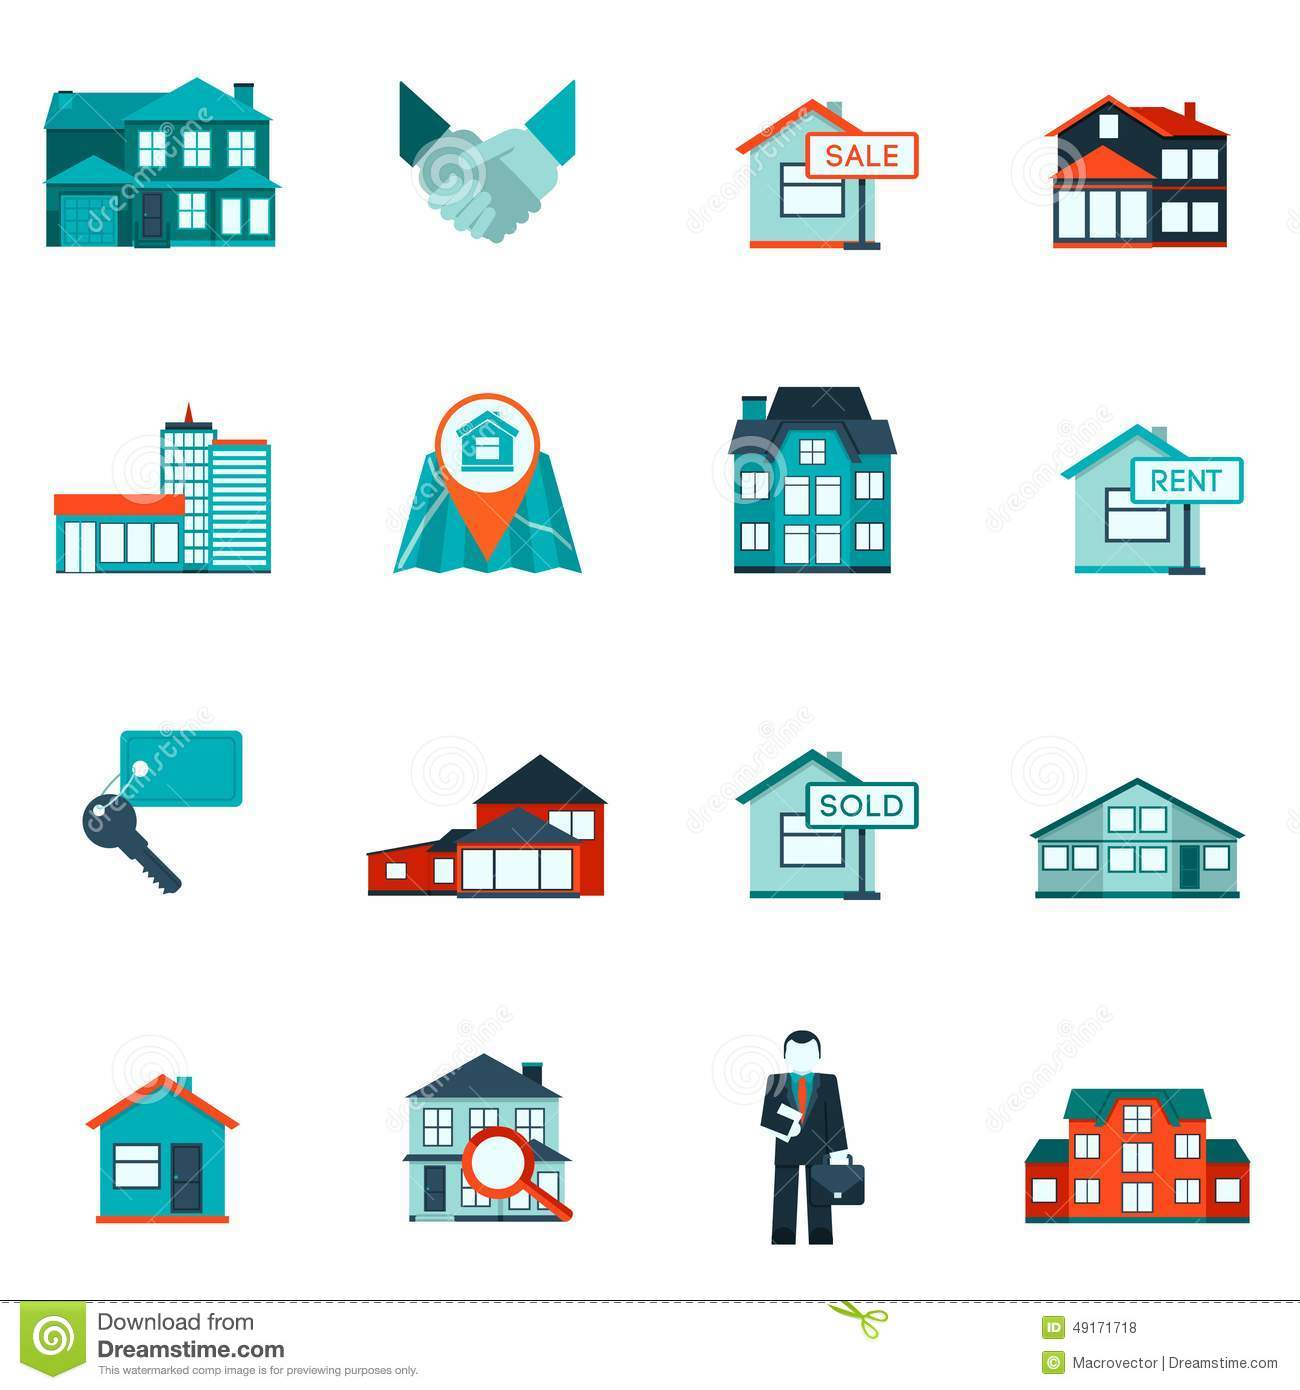 Nyc Classifieds Apartments: Real Estate Icon Flat Stock Vector. Illustration Of